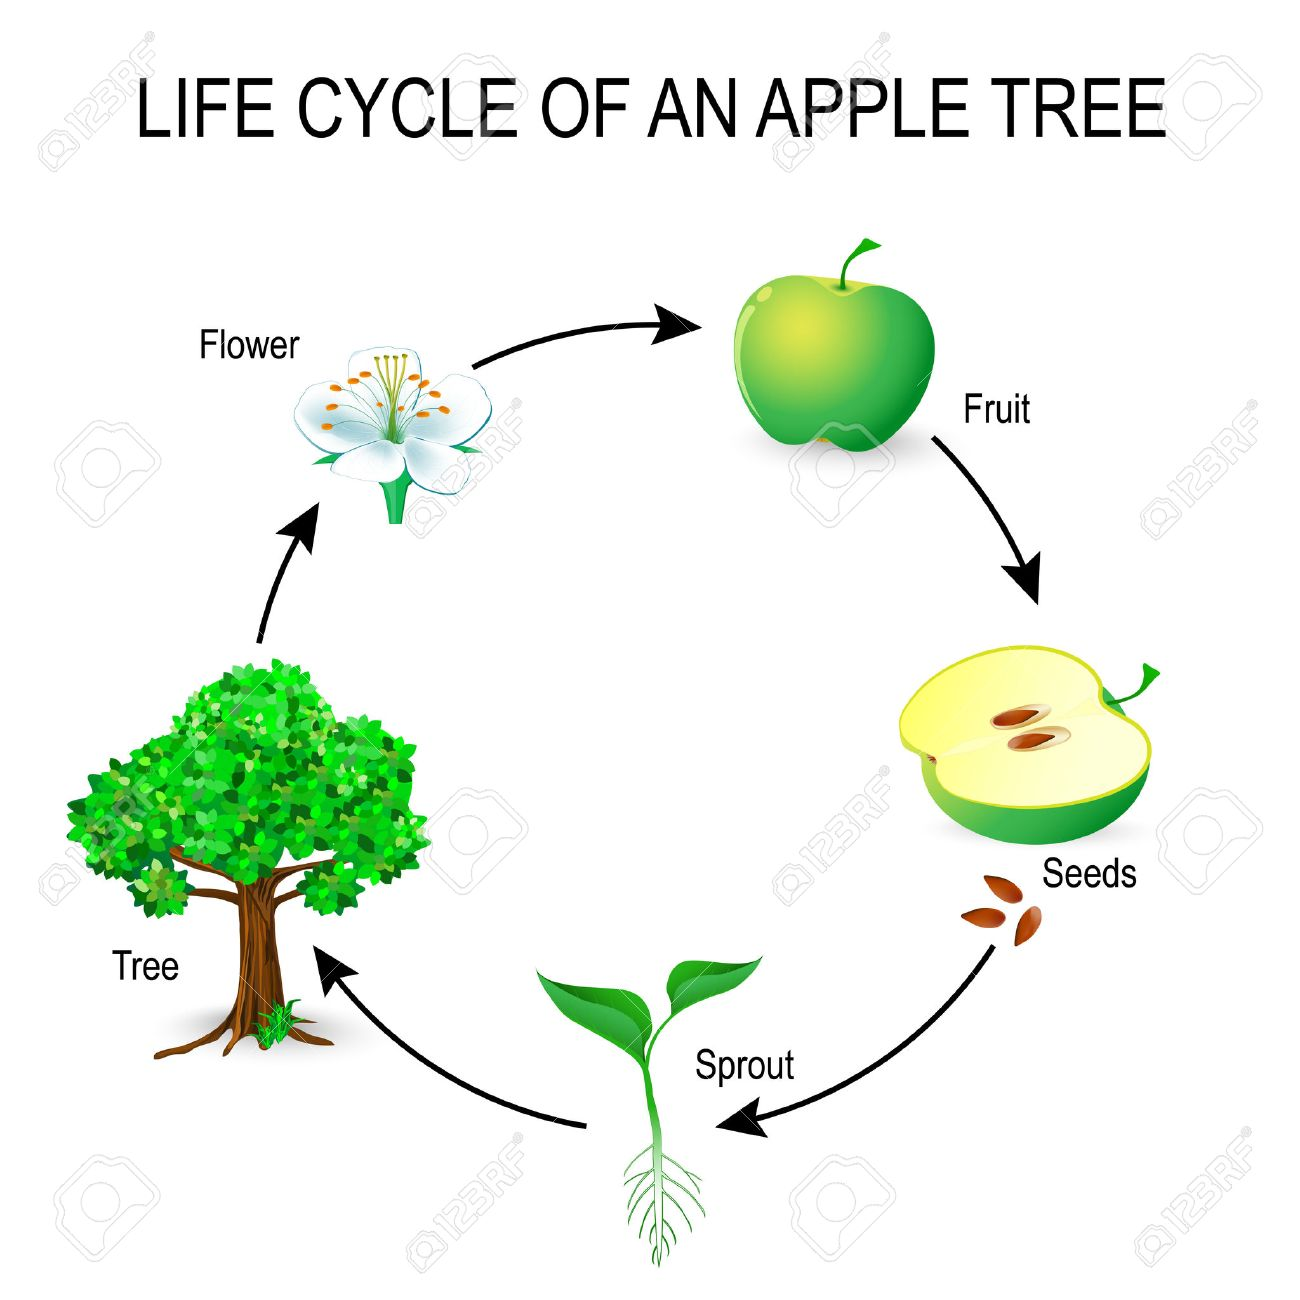 Life cycle of an apple tree flower seeds fruit sprout seed life cycle of an apple tree flower seeds fruit sprout seed pooptronica Images